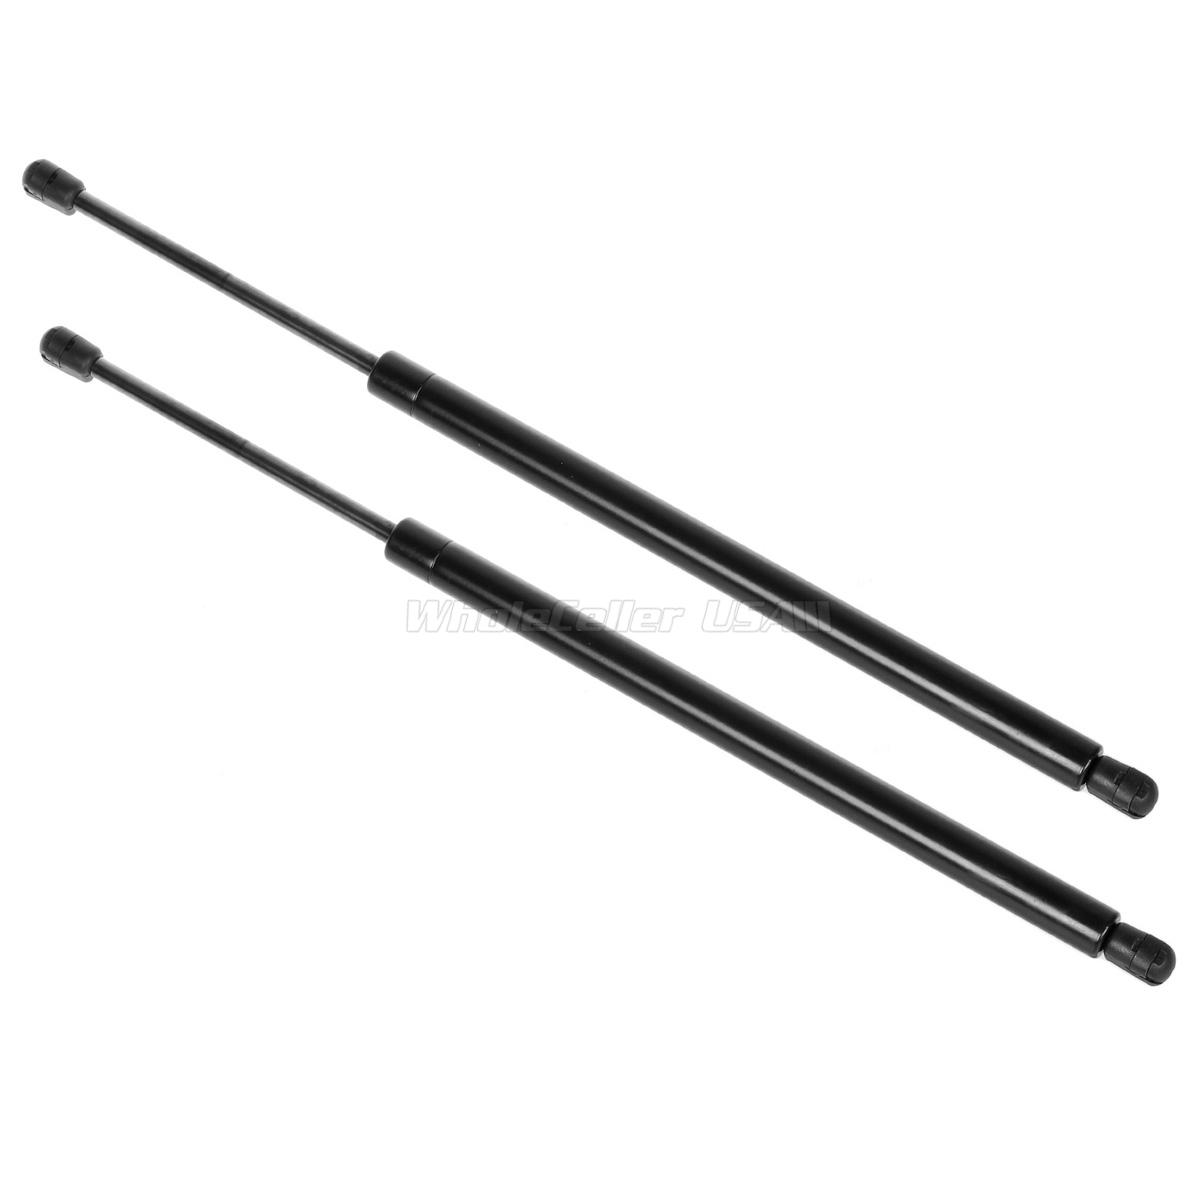 Qty 2 Front Hood Gas Charged Lift Support Struts Arm For